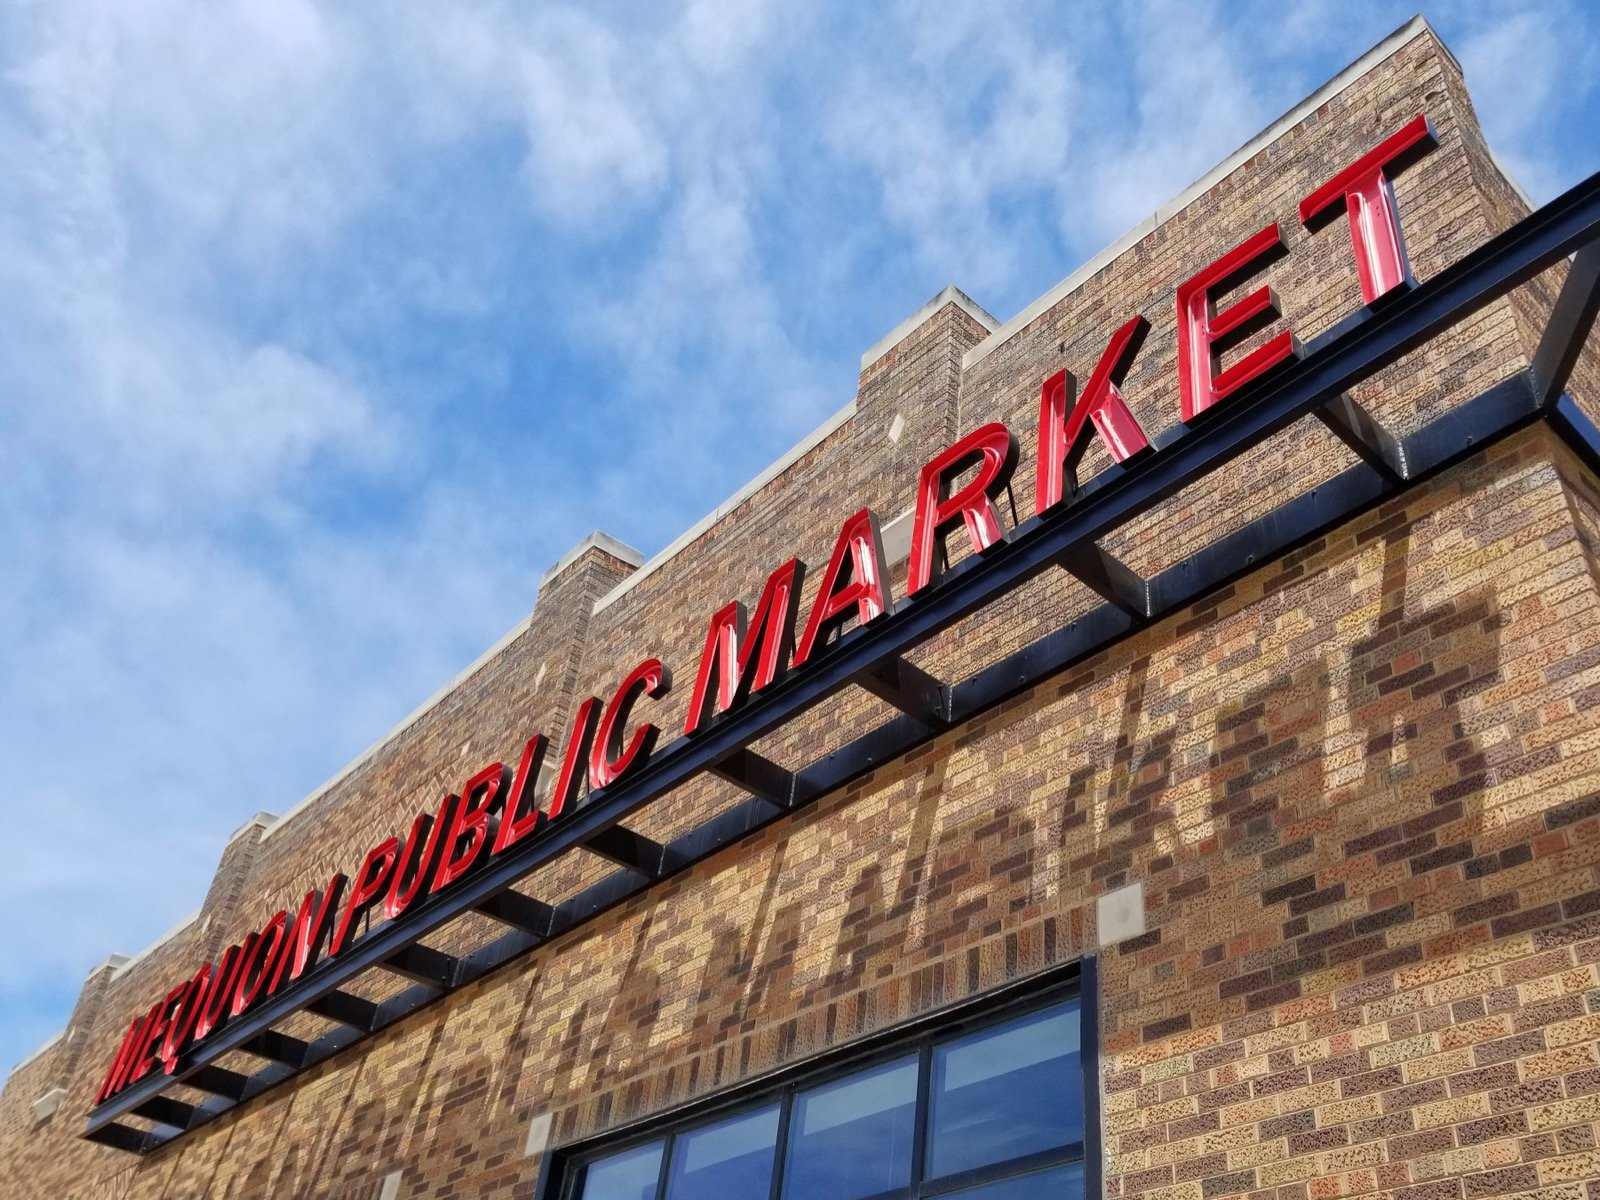 Mequon Public Market opening on June 22 to include ribbon cutting